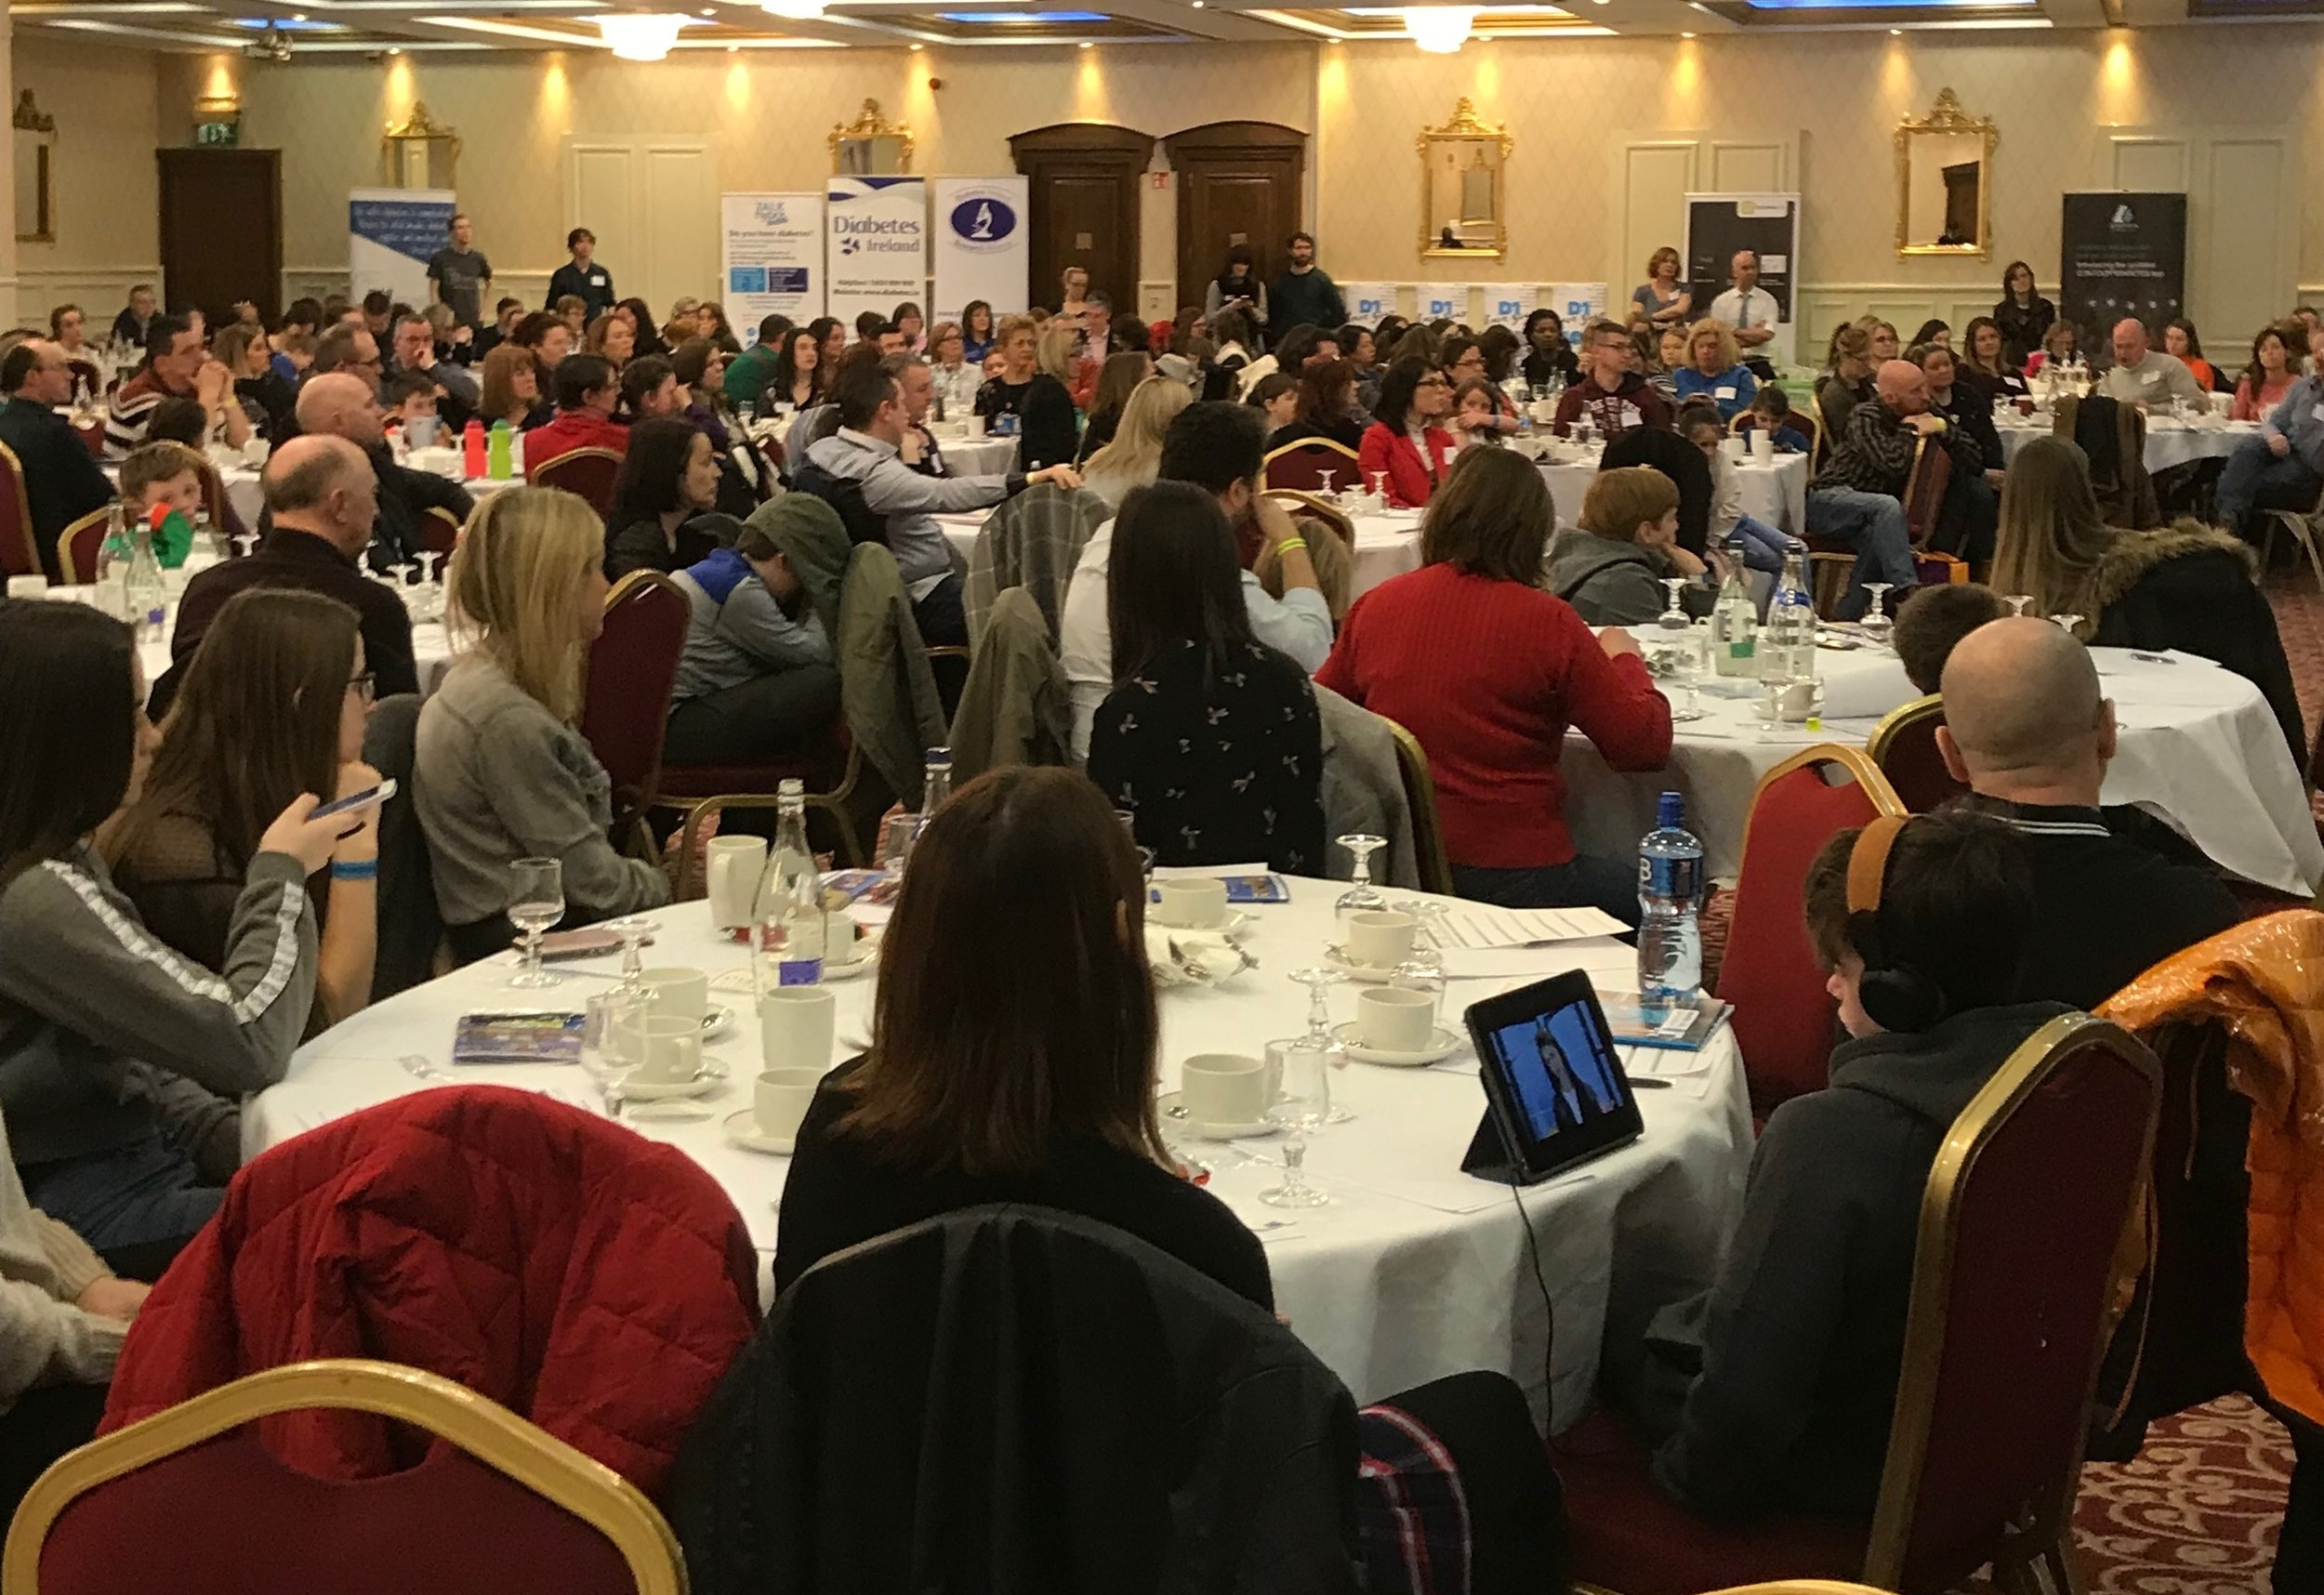 Photo taken at Thriveabetes 2018 in February. Approximately 300 people in this room: all living with diabetes